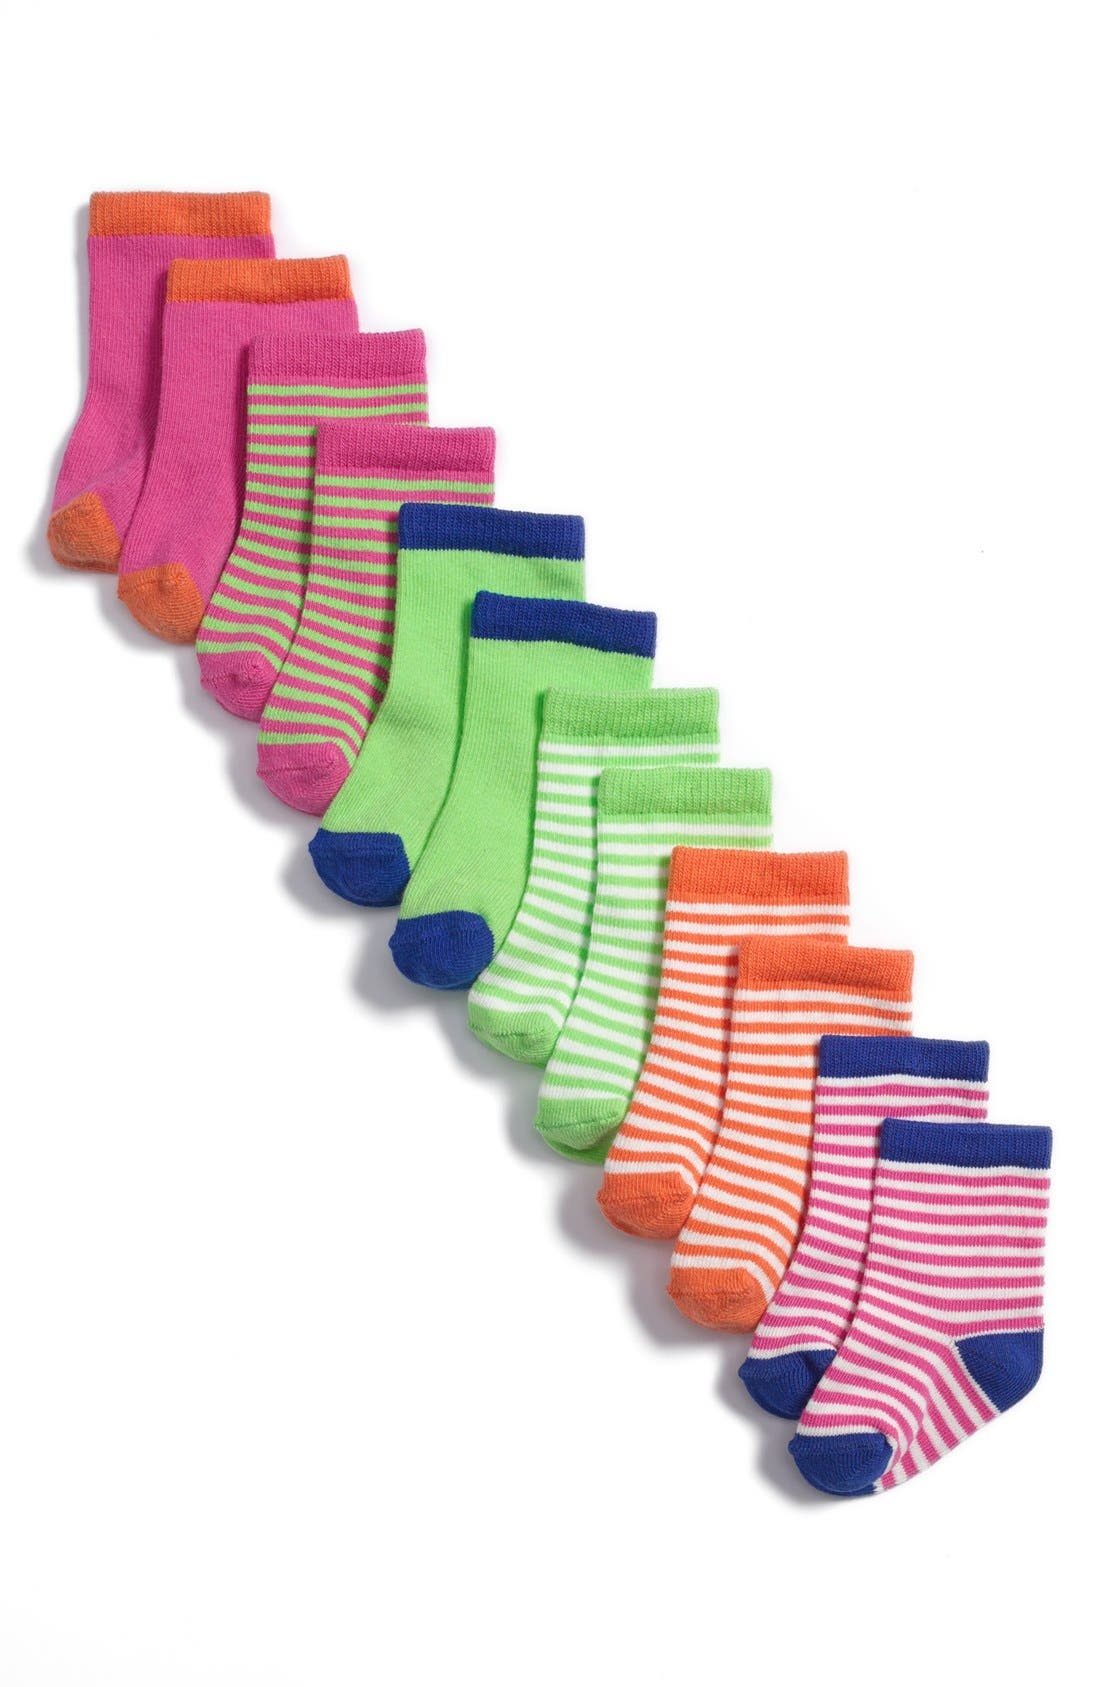 Alternate Image 1 Selected - Stem Baby Patterned Socks (6-Pack) (Baby Girls)